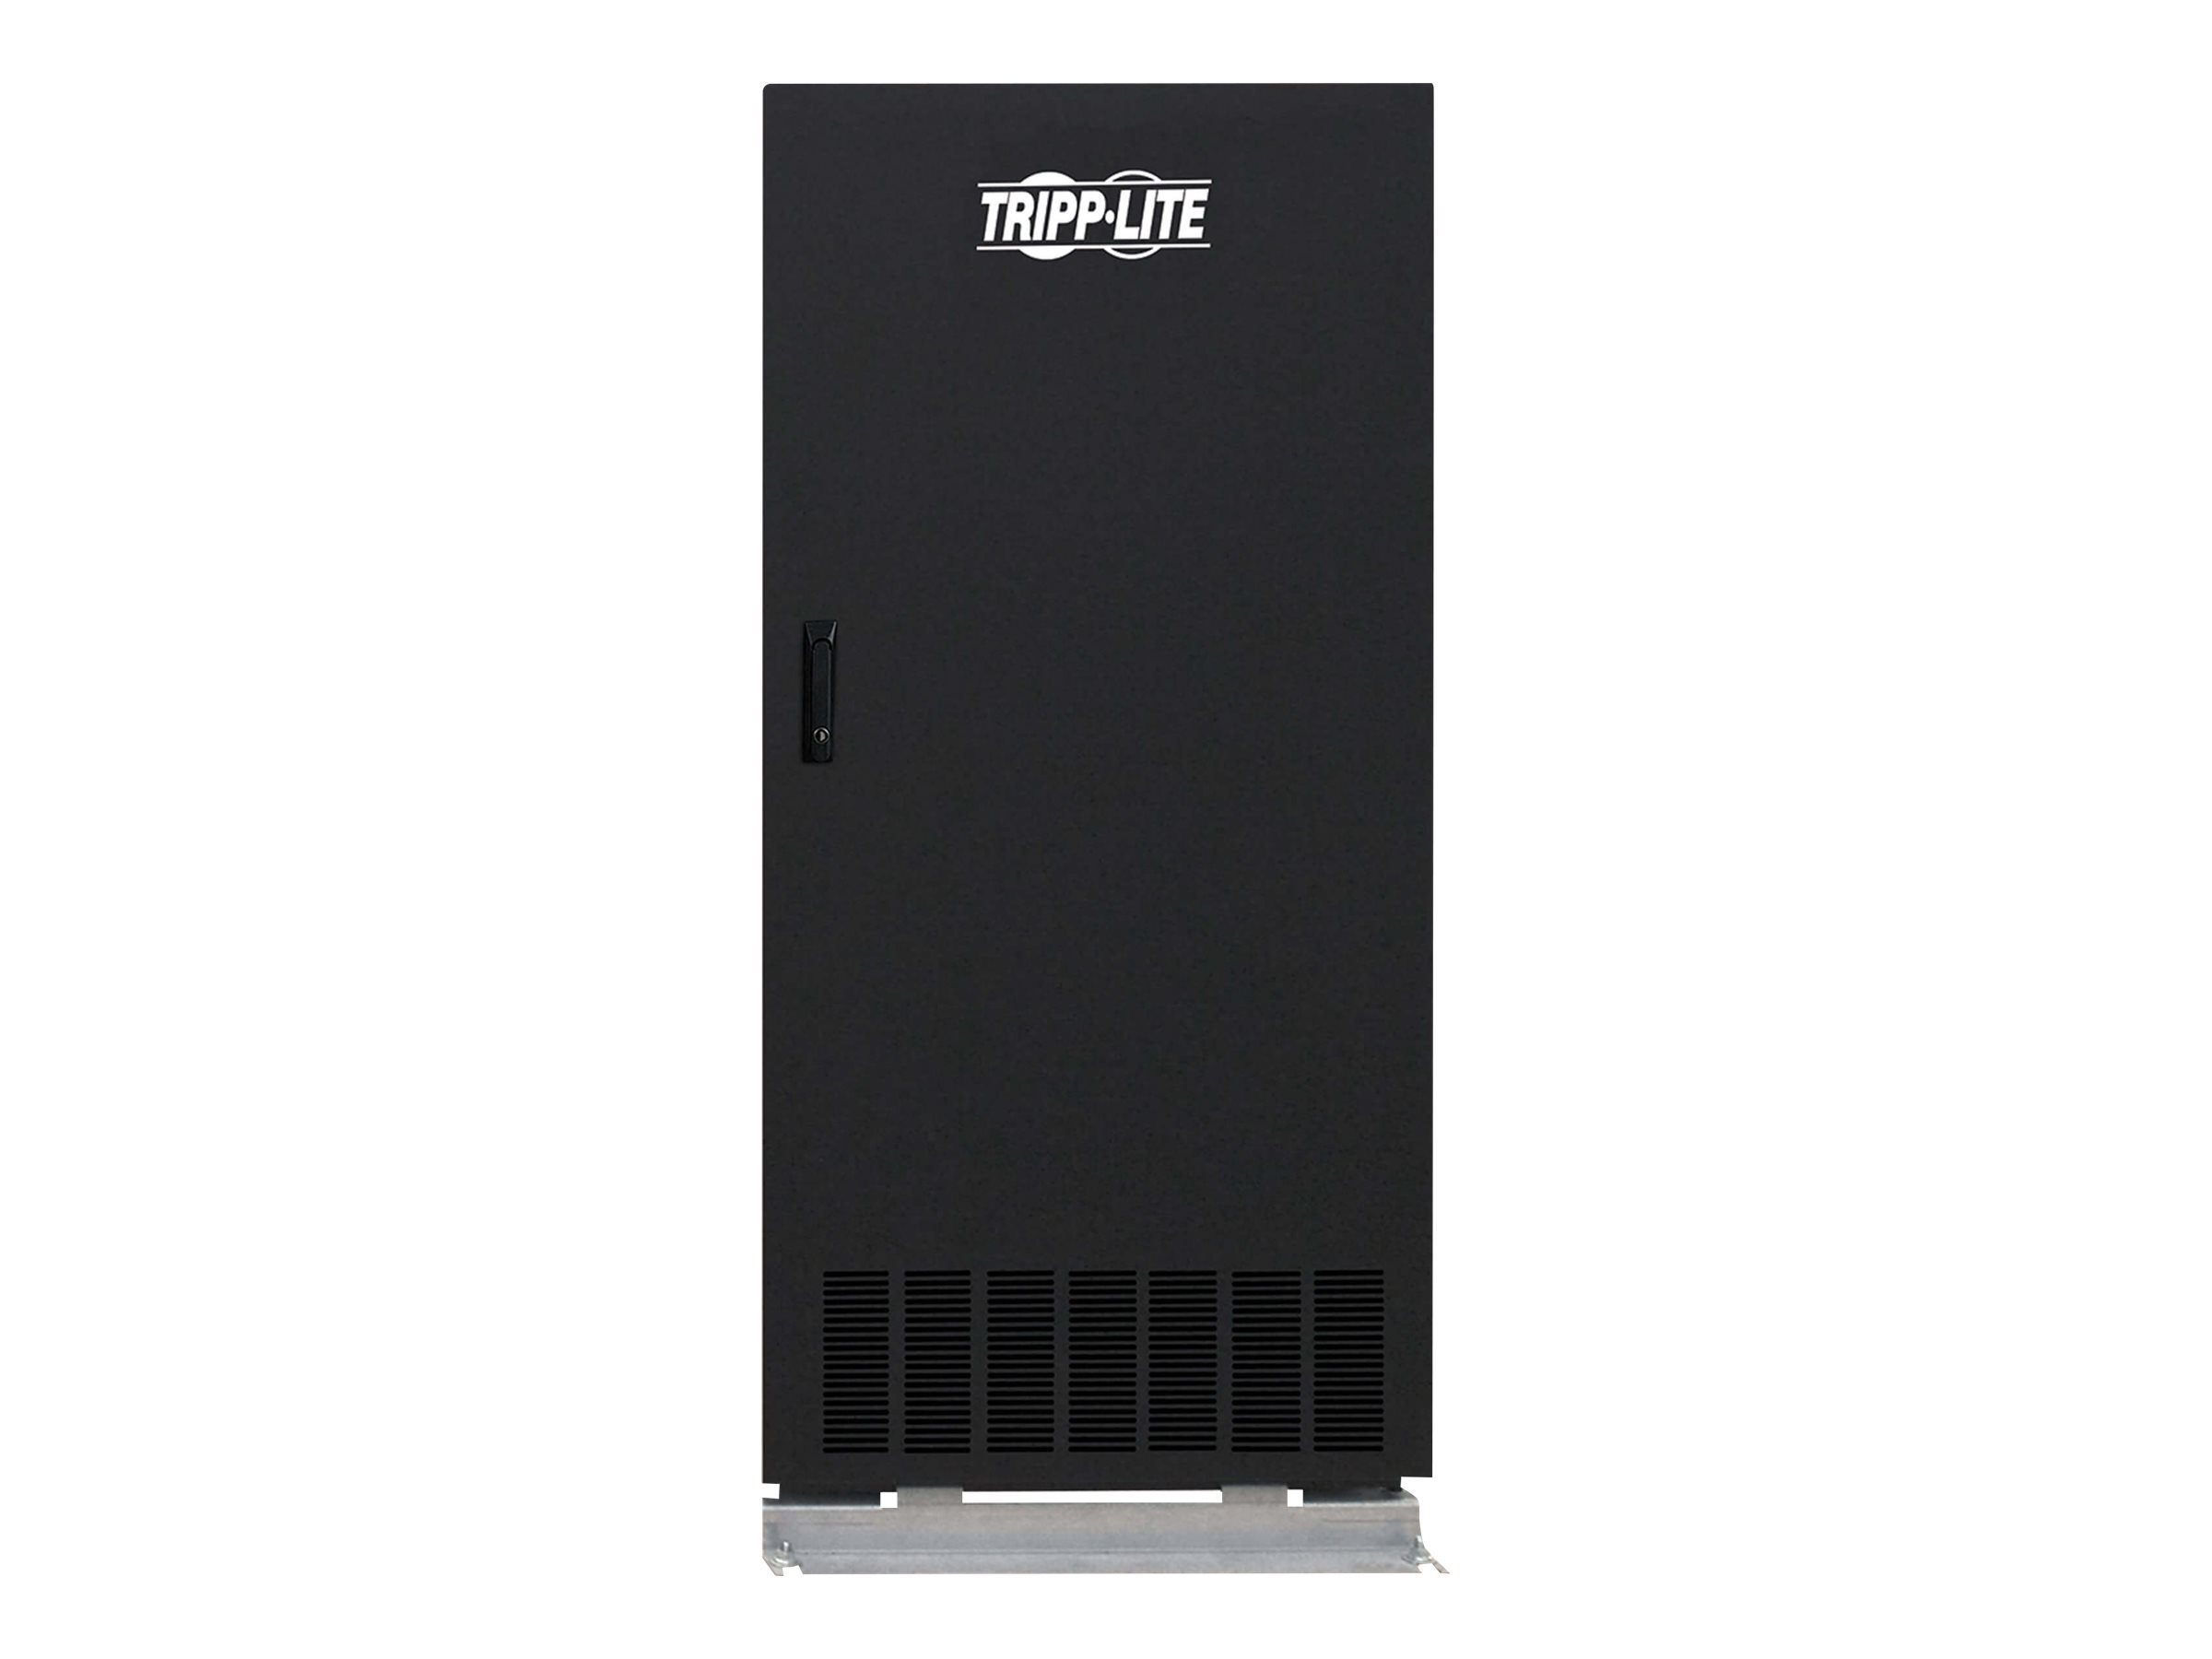 Tripp Lite UPS Battery Pack for SV-Series 3-Phase UPS, +/-120VDC, 2 Cabinets - Tower, TAA, No Batteries Included - batt…